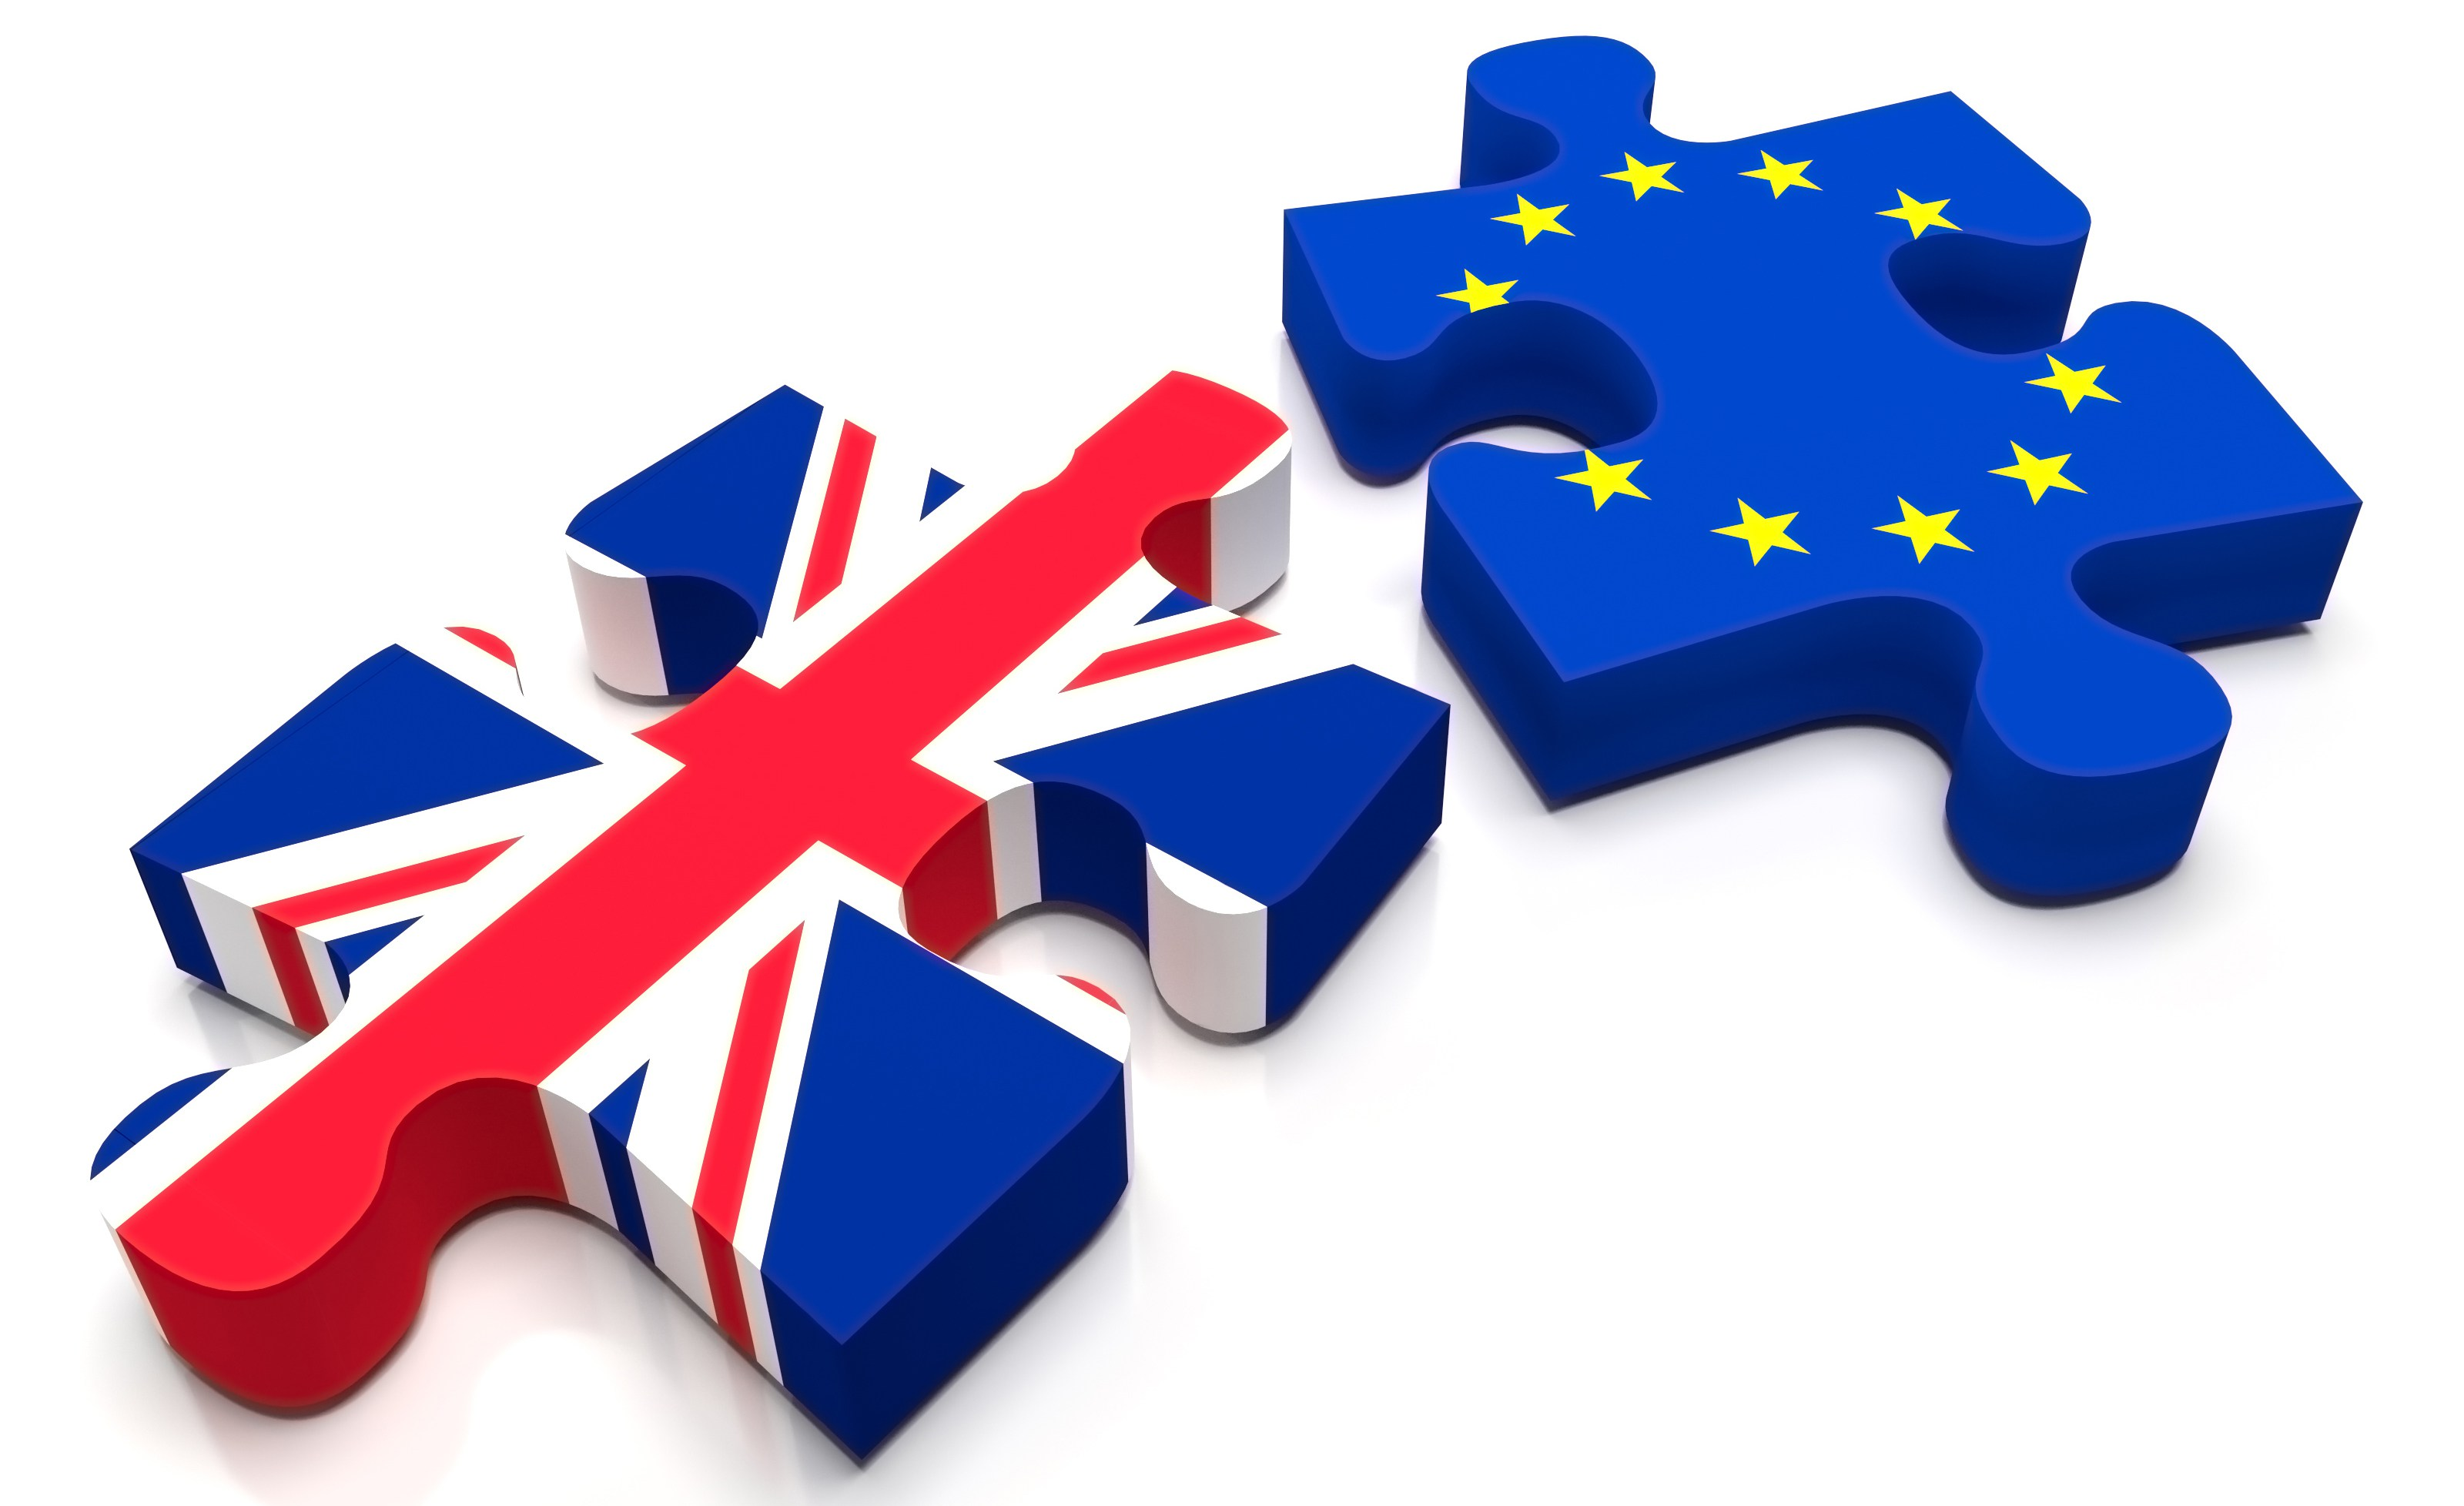 Brexit Image For Web